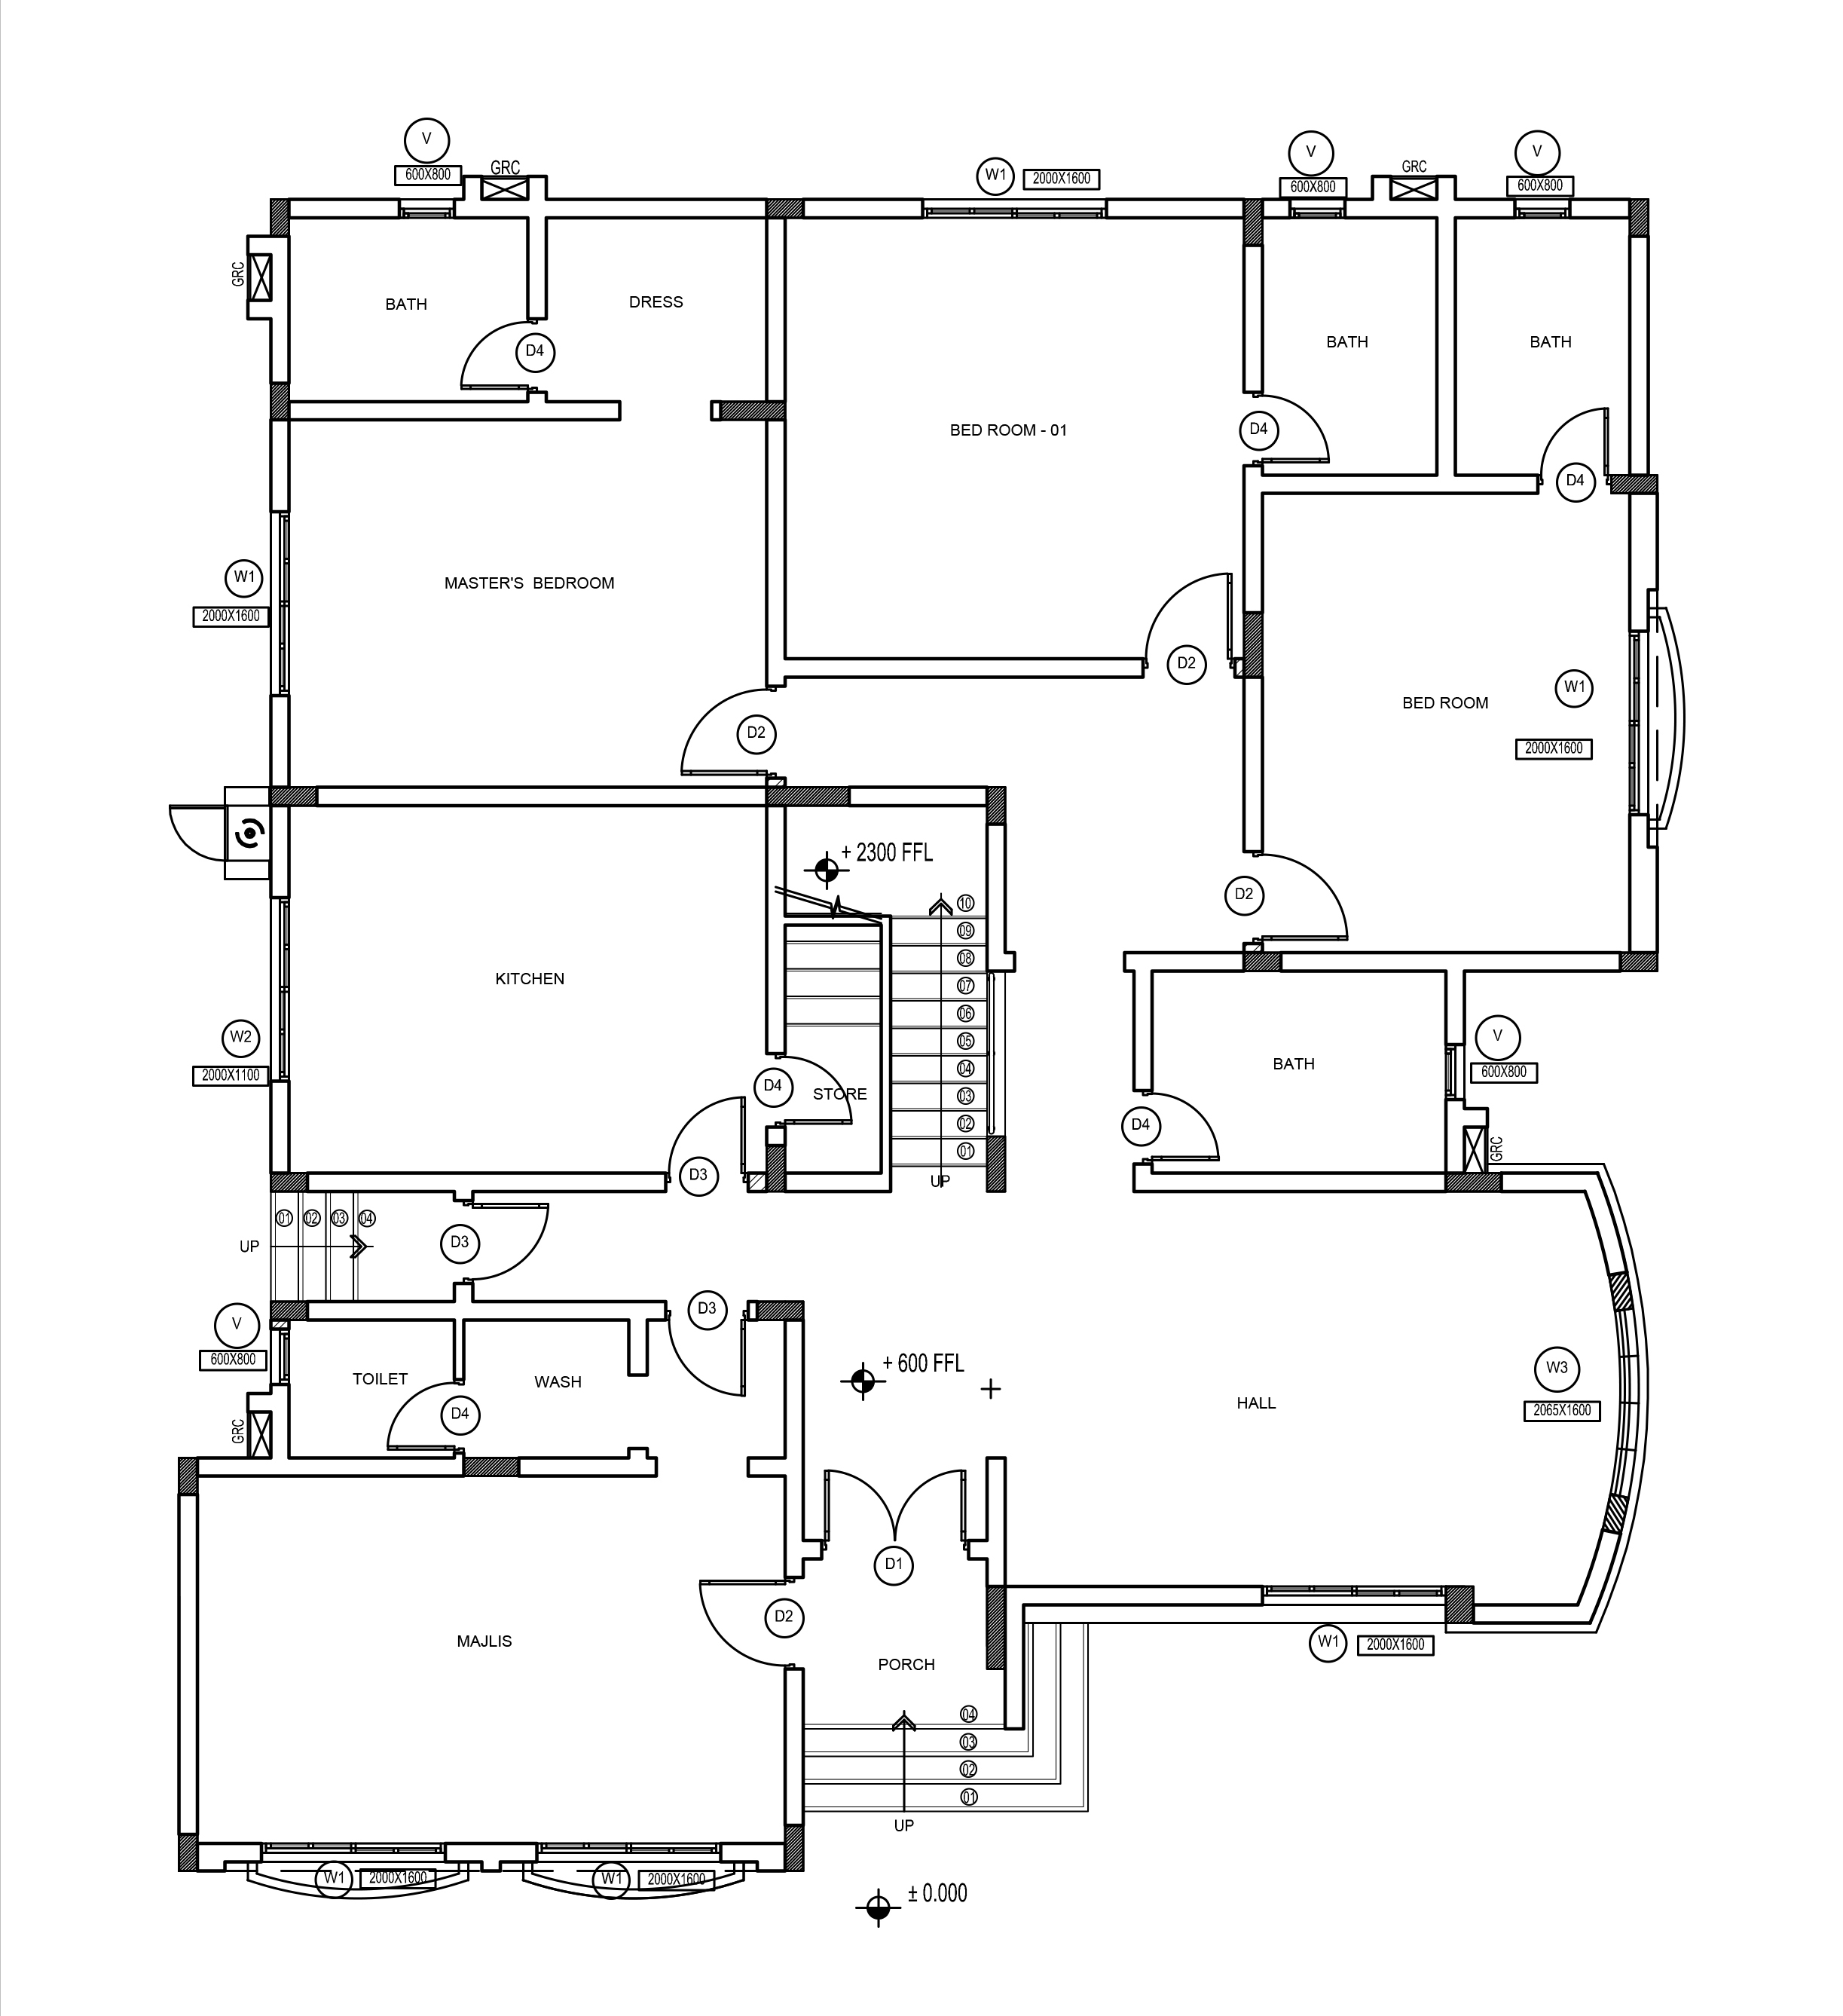 Four bedroom double story house plan for middle east country for House plan cad file